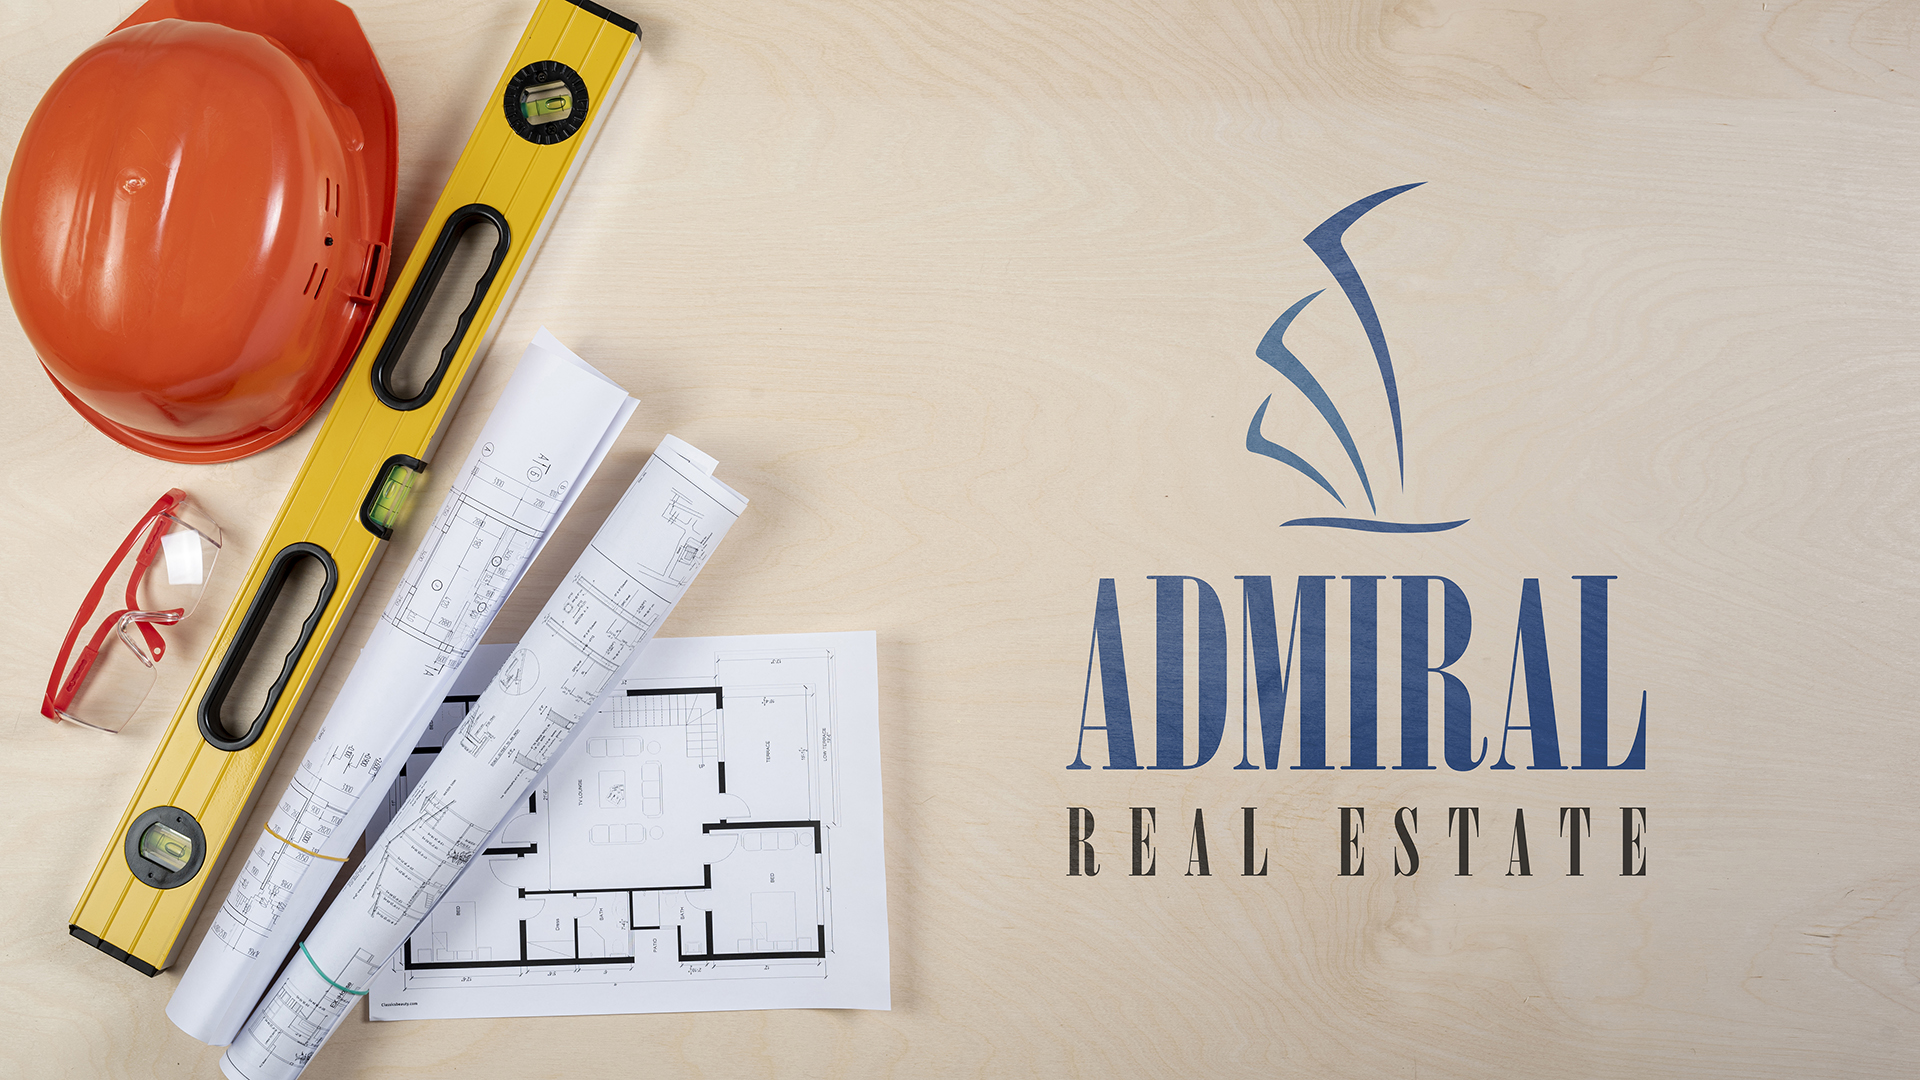 admiral real estate logo mockup made by assam artist